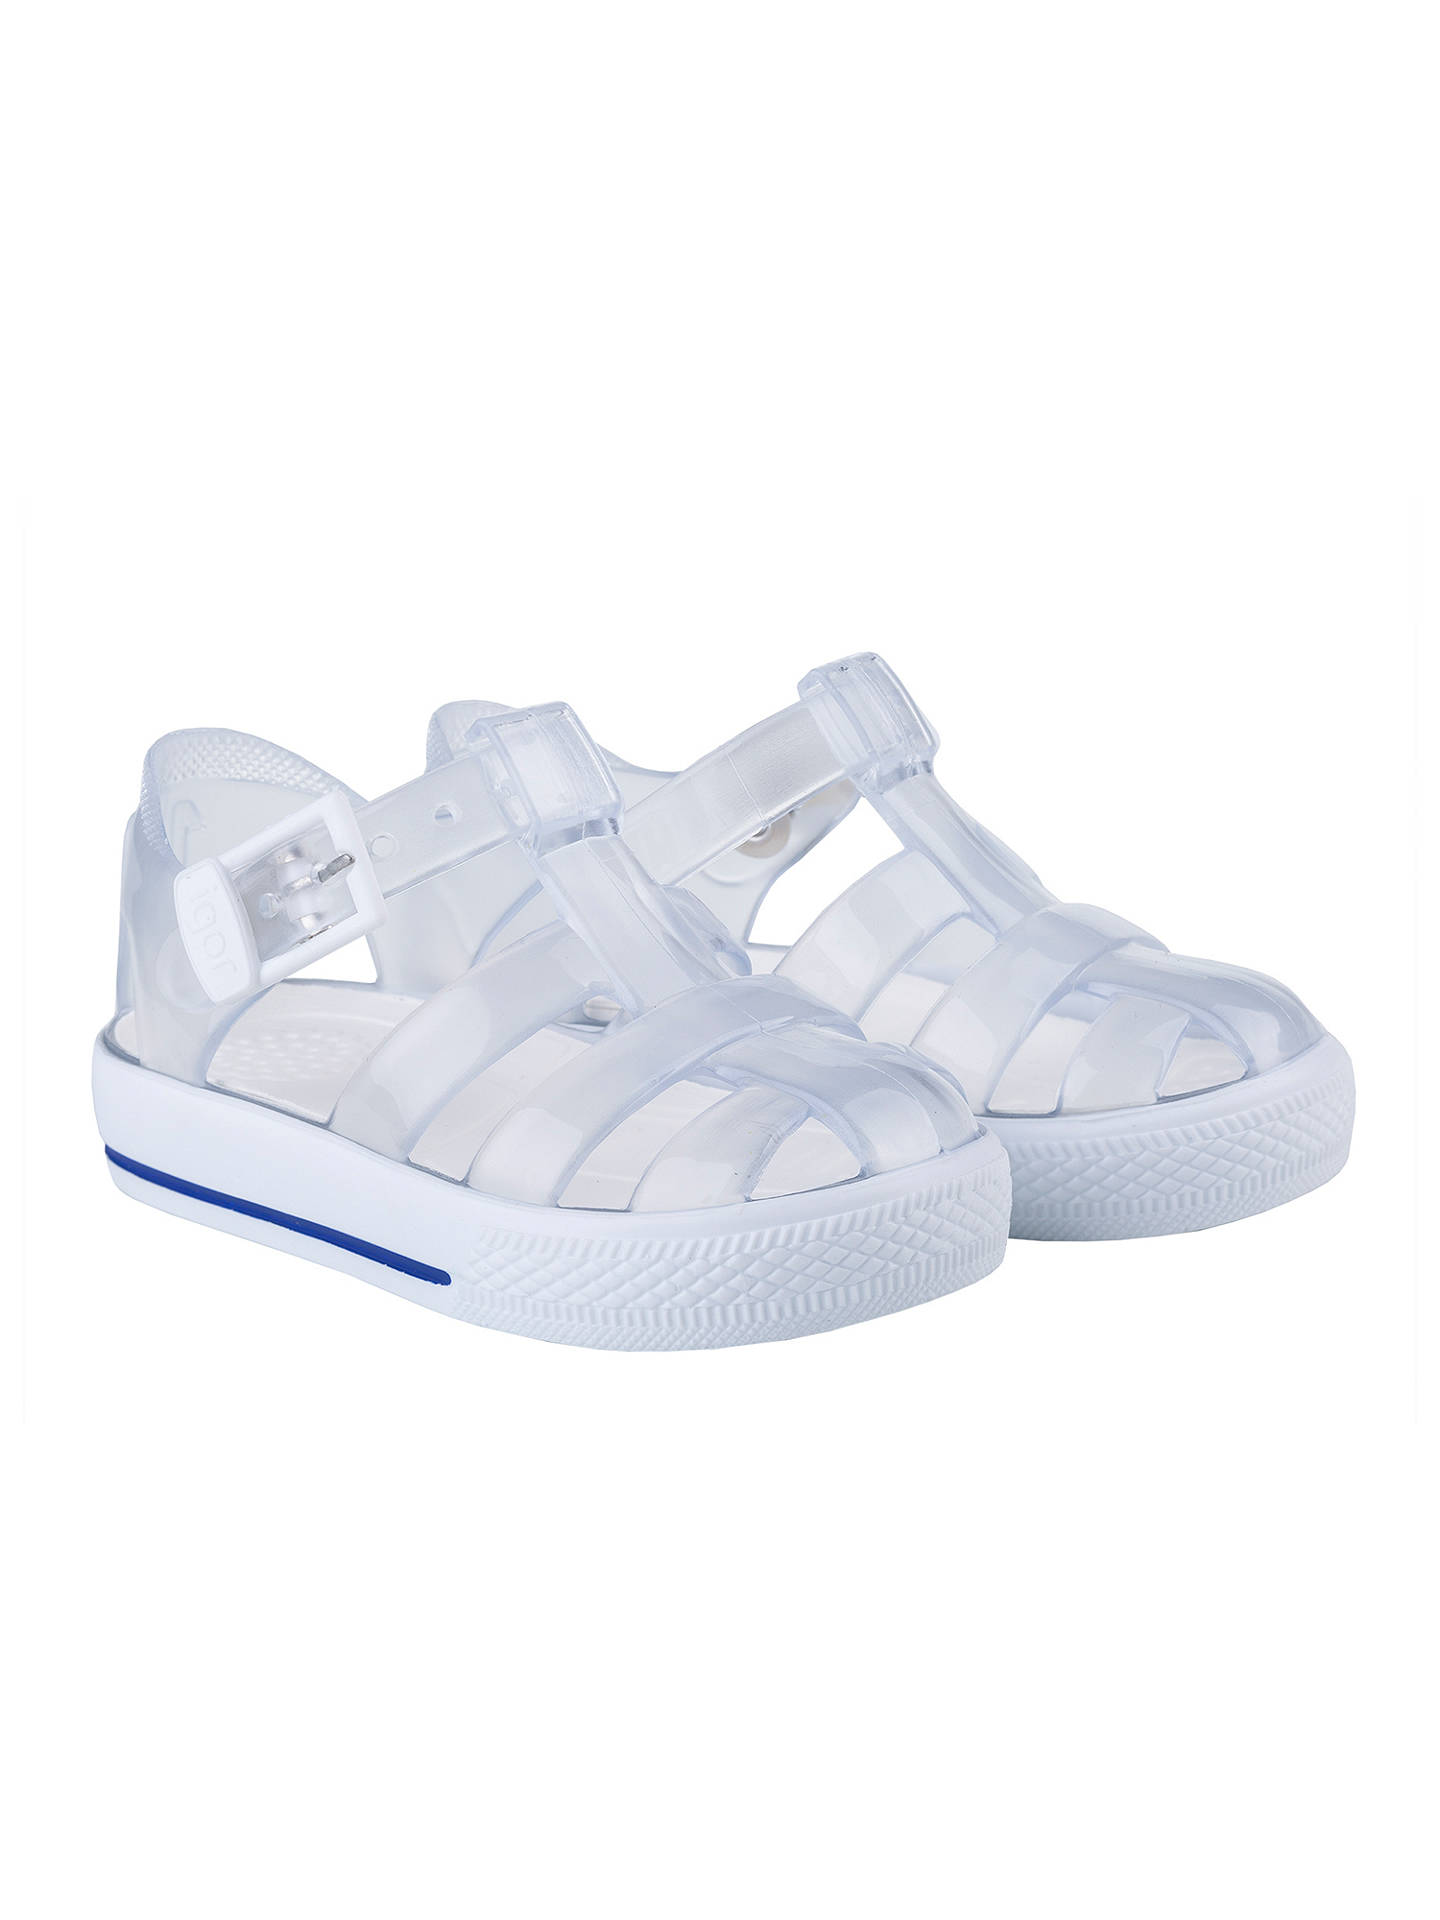 de634d4b6074 IGOR Children s Tenis Jelly Shoes at John Lewis   Partners